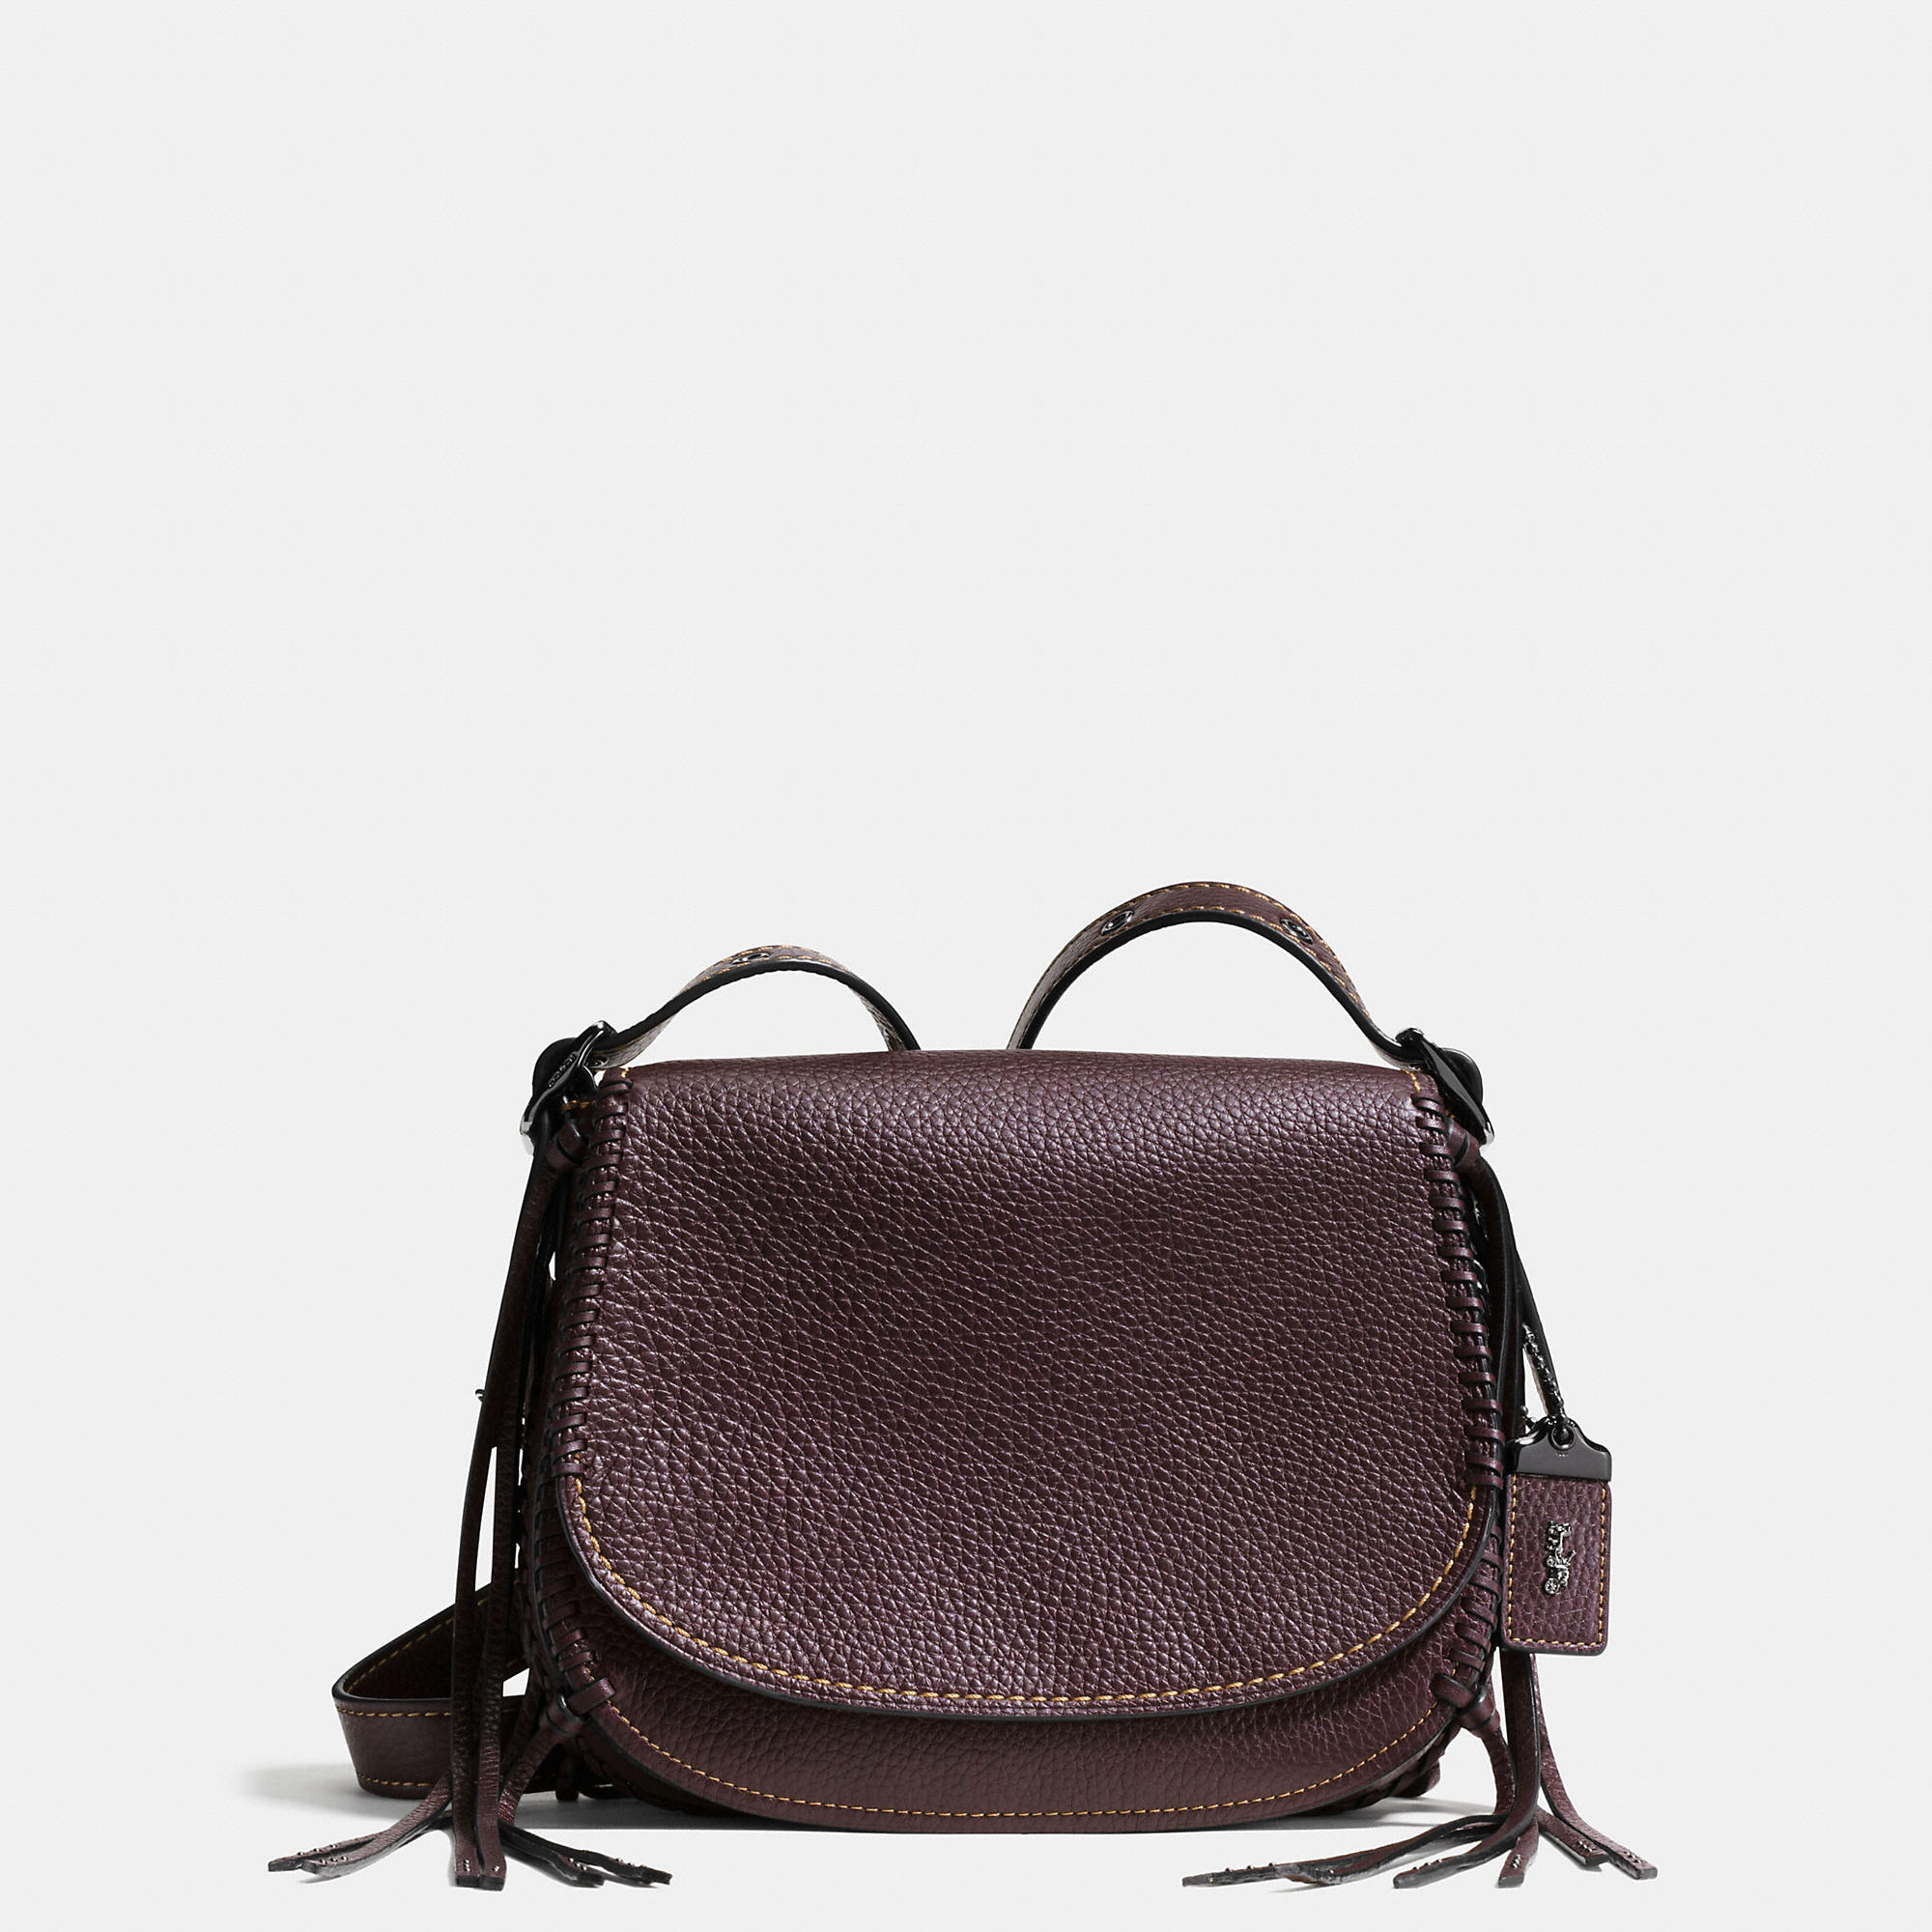 Coach 1941 Saddle Bag 23 In Whiplash Leather